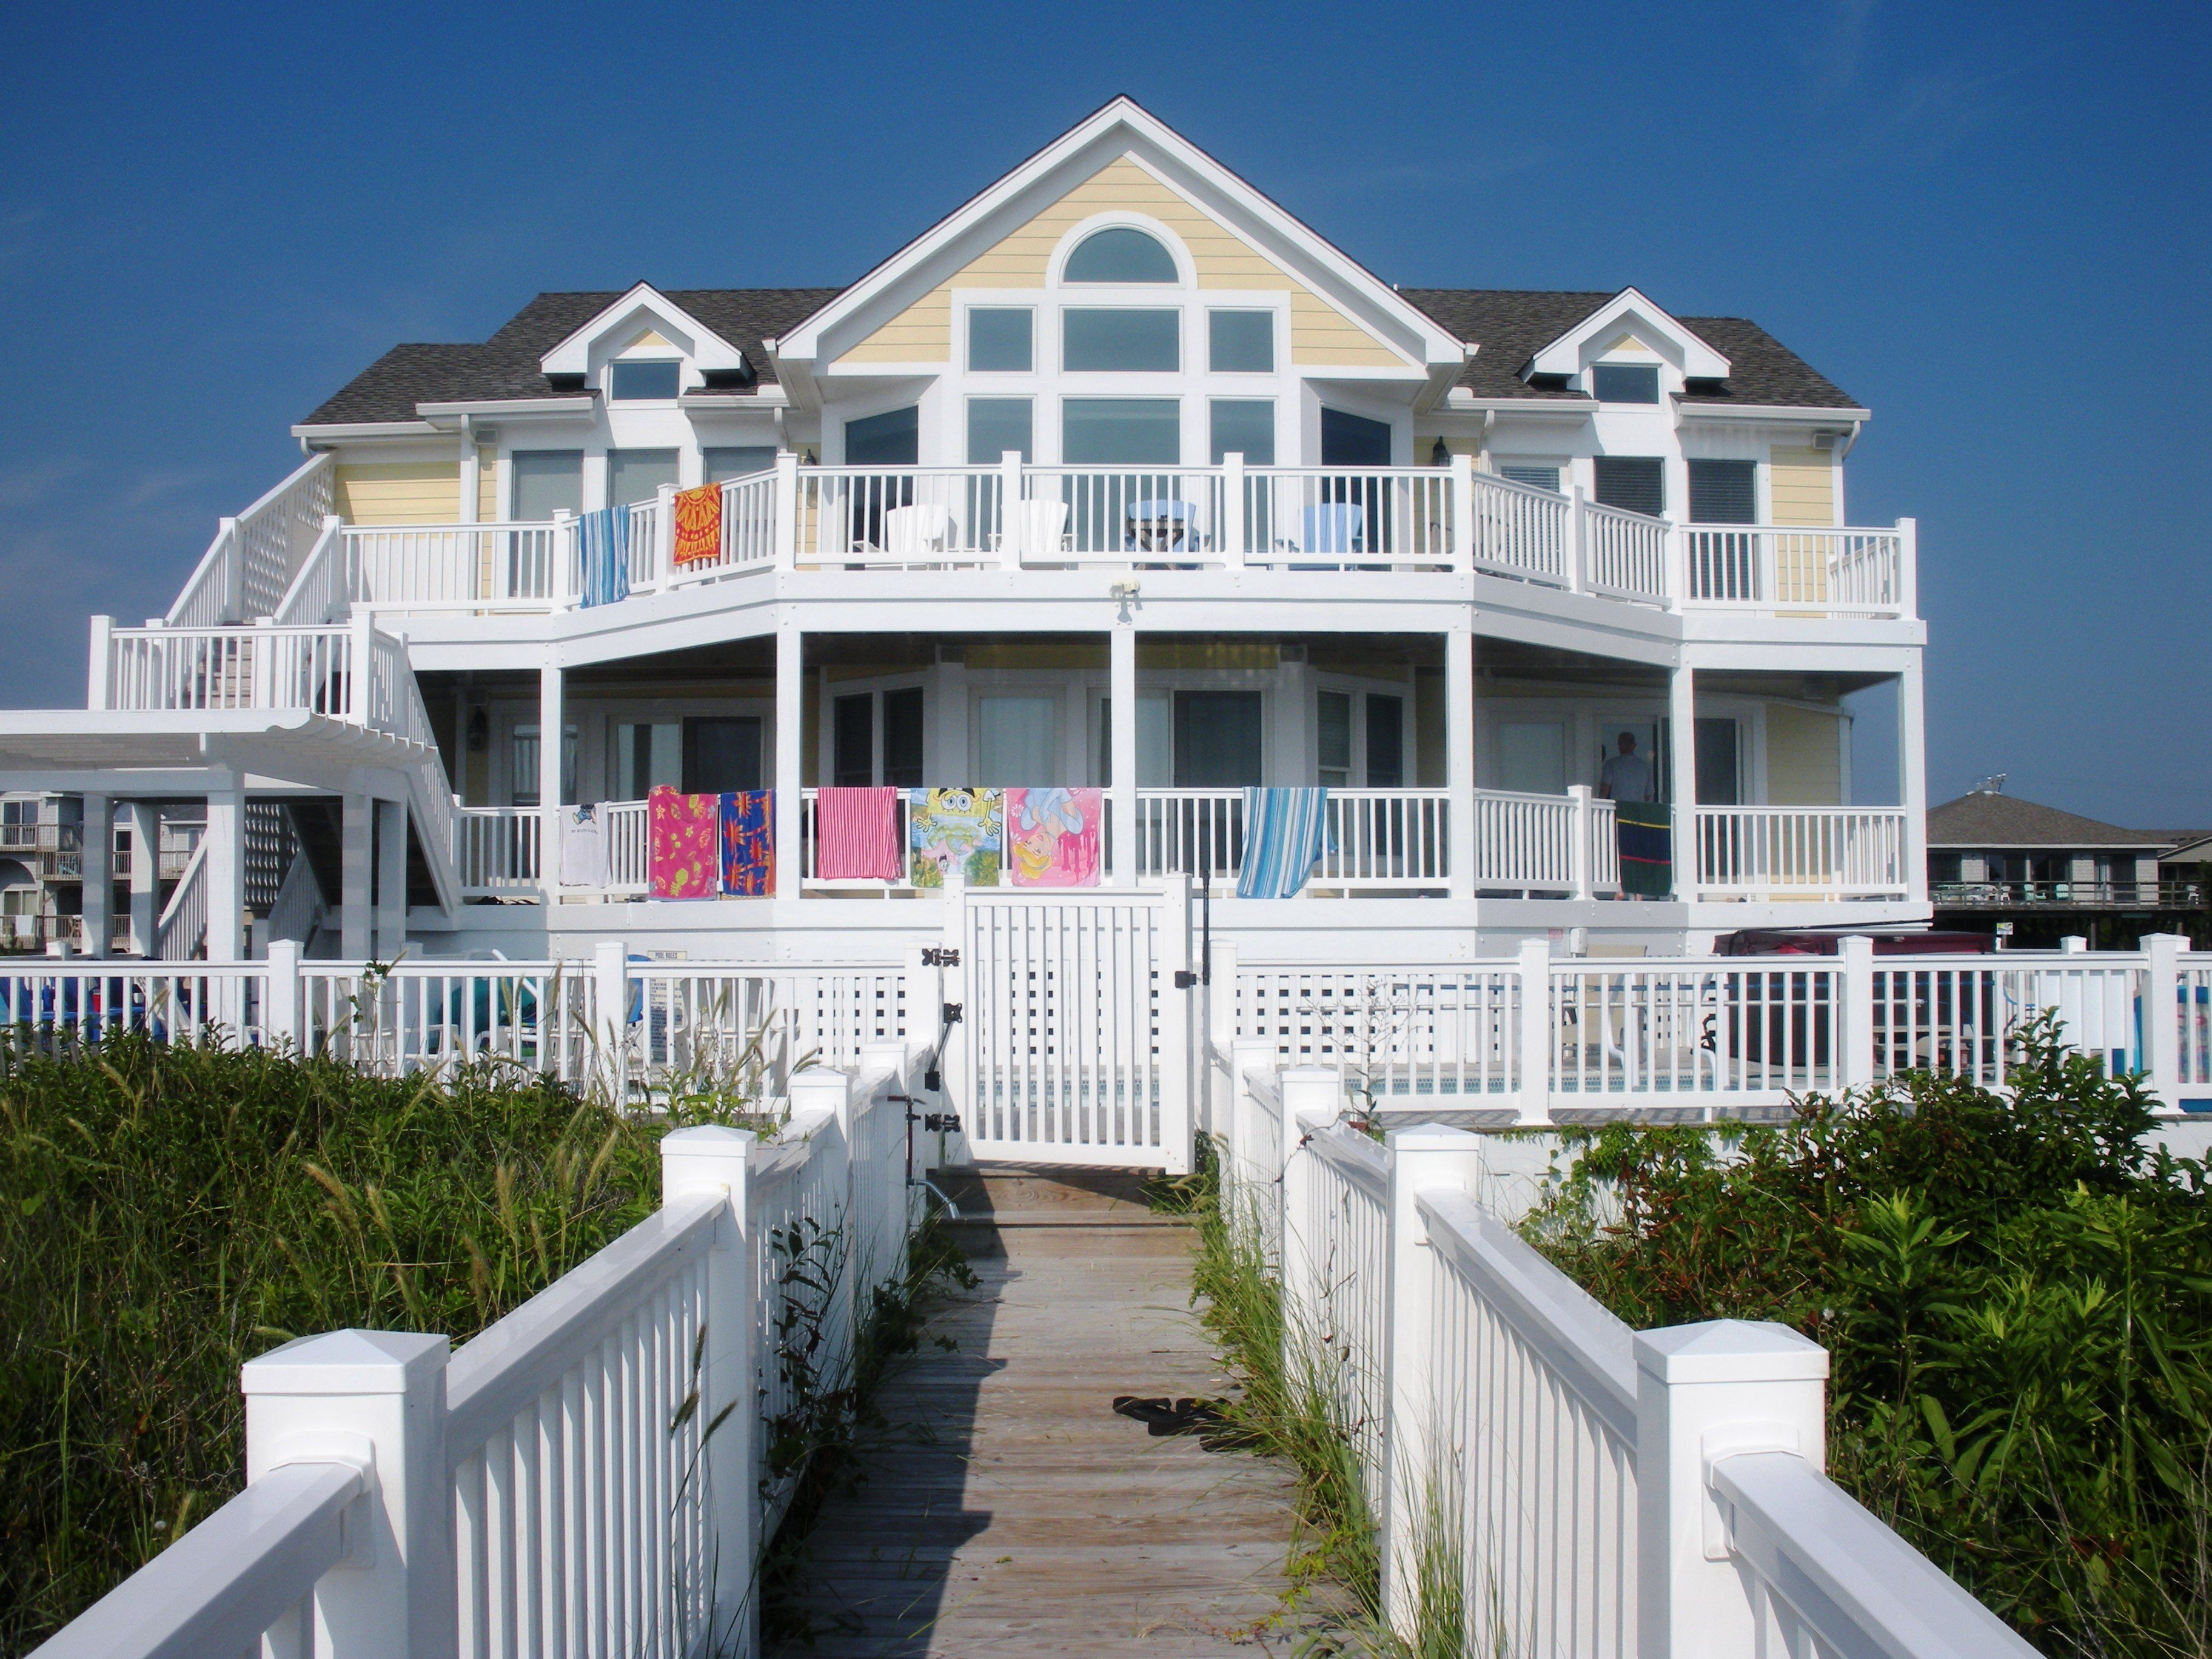 house rentals cape vacation beach in outer head cottage nags banks homes